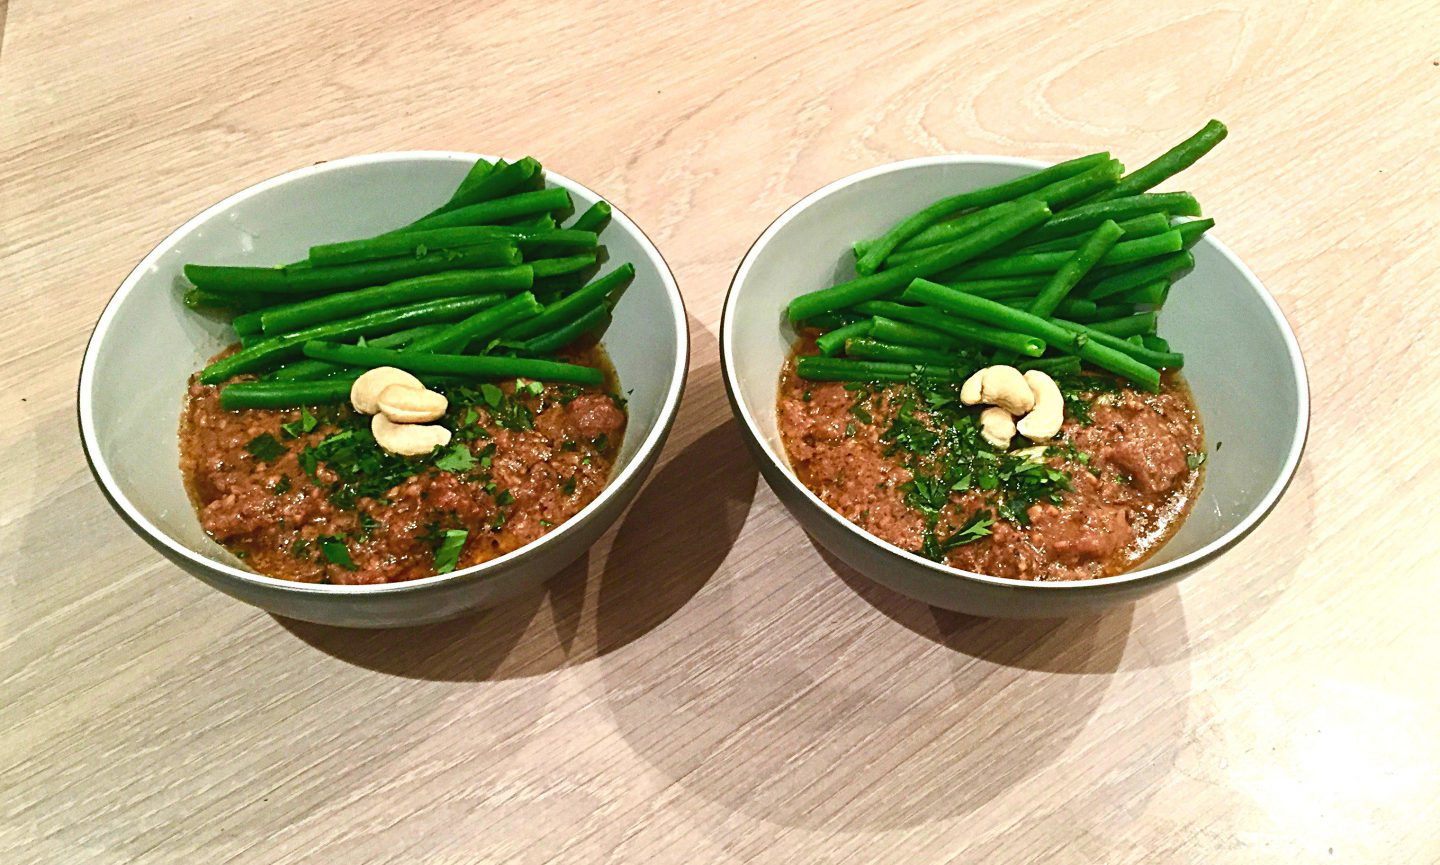 Lamb, Coconut and Cashew Nut Curry